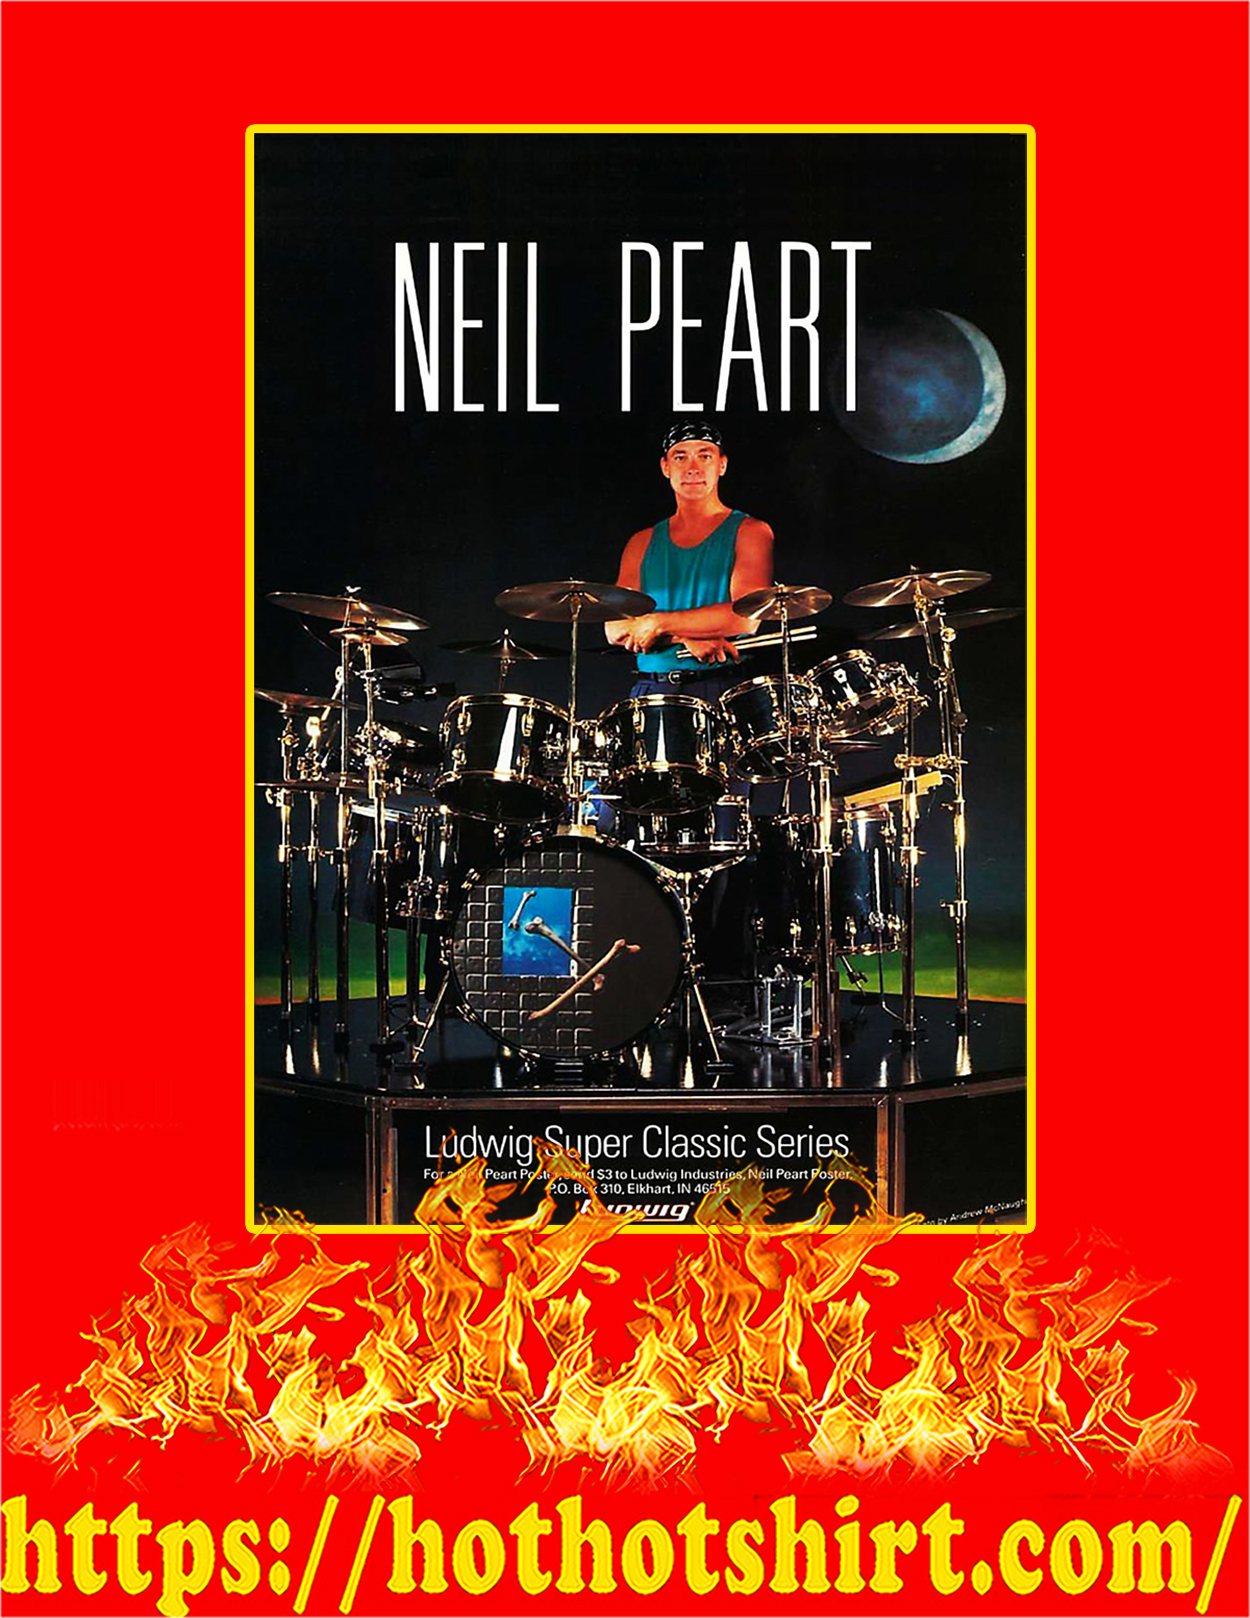 Neil Peart Ludwig Super Classic Series Poster - A4